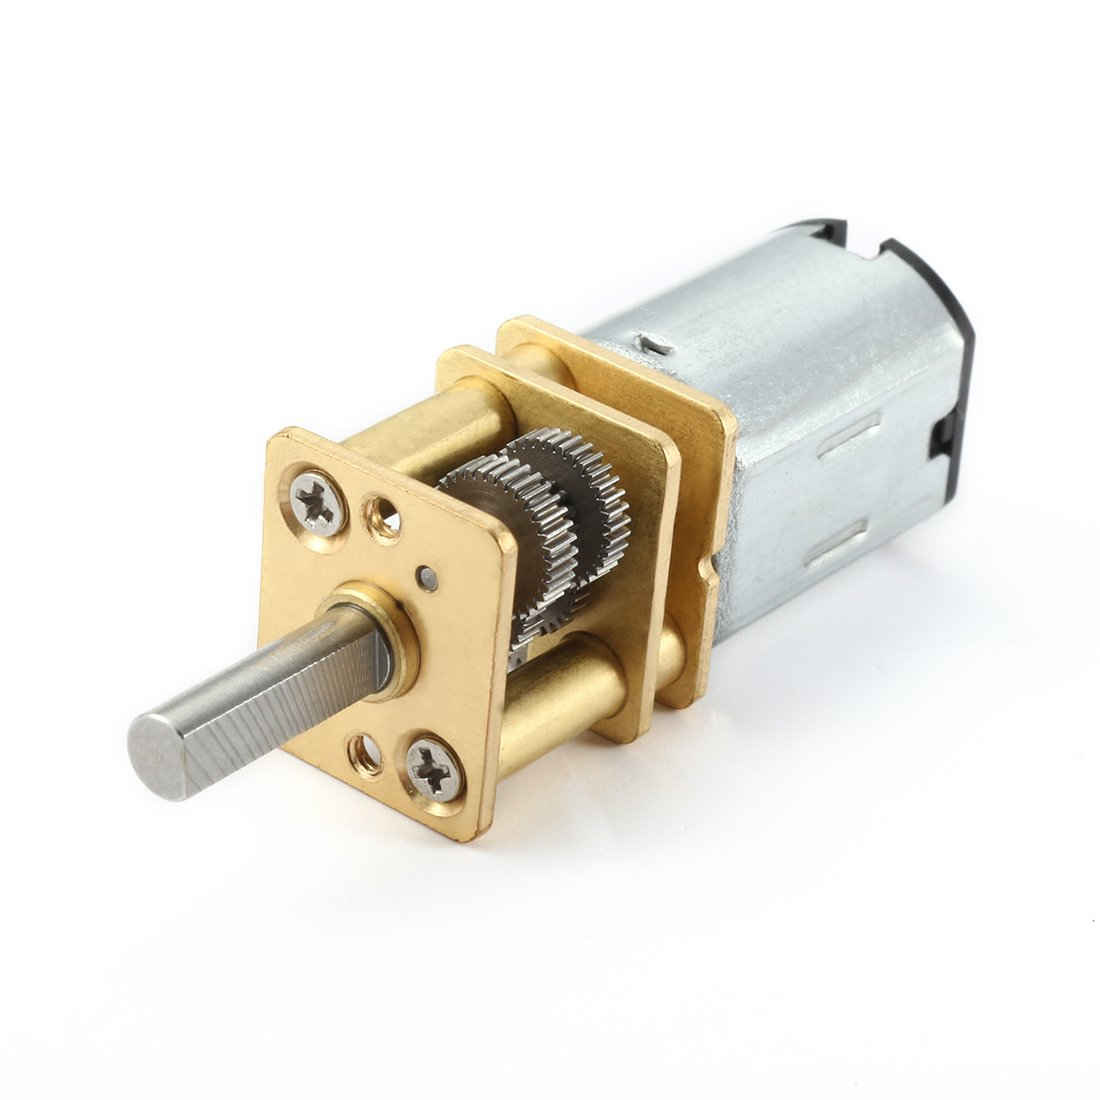 uxcell DC 6V 70RPM Micro Speed Reduction Motor Mini Gear Box Motor with 2 Terminals for RC Car Robot Model DIY Engine Toy